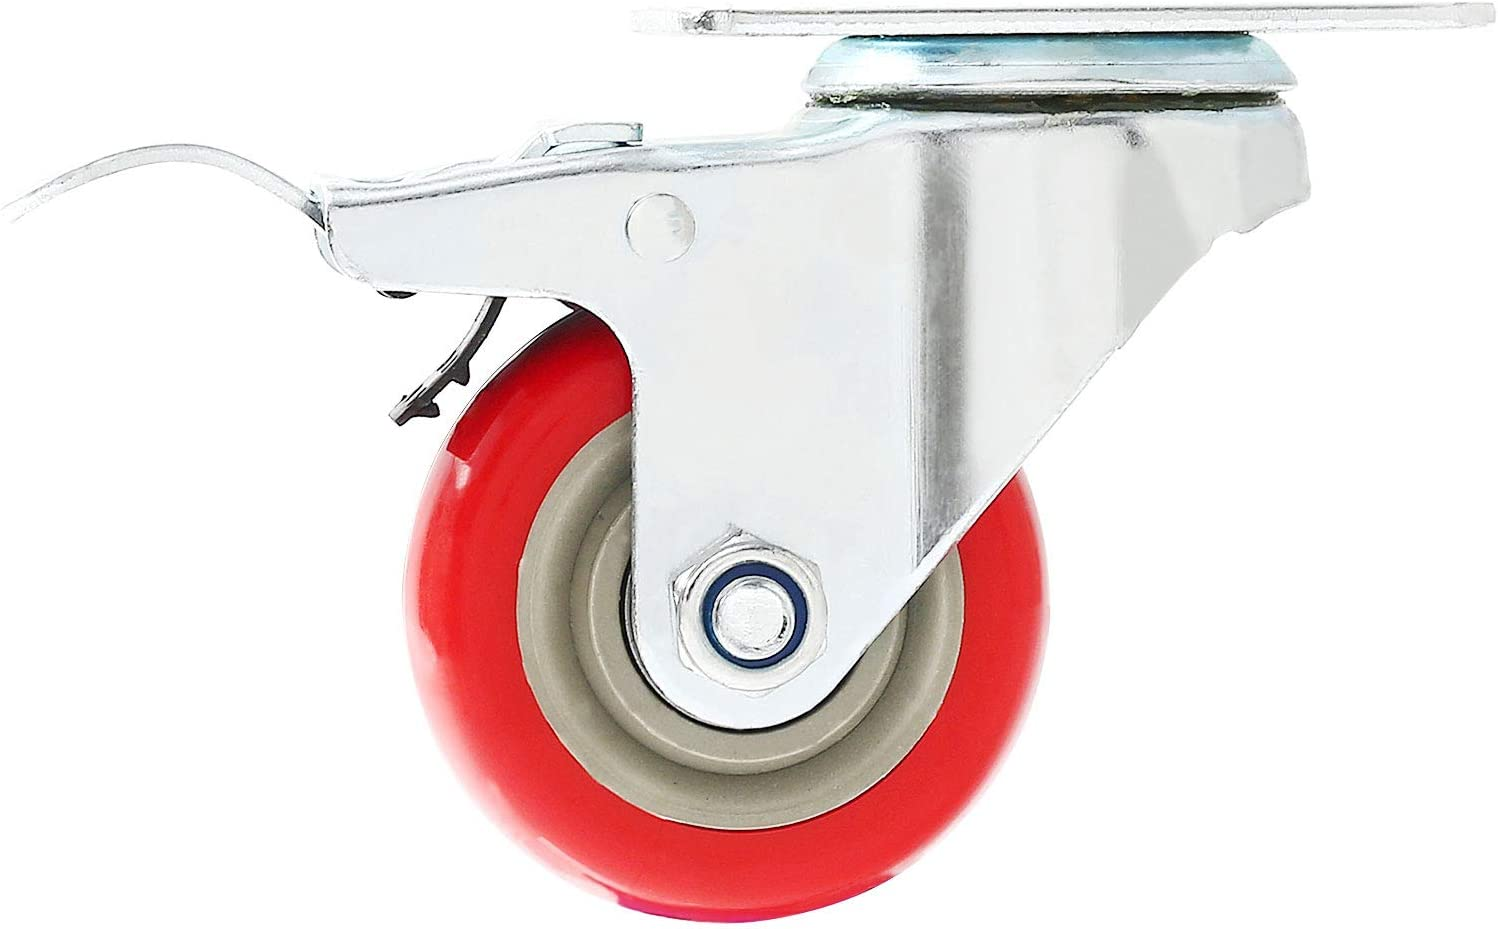 2 No Brake FactorDuty 4 Pack Caster Wheels Swivel Plate On Red Polyurethane Wheels with HD Hardware Kit